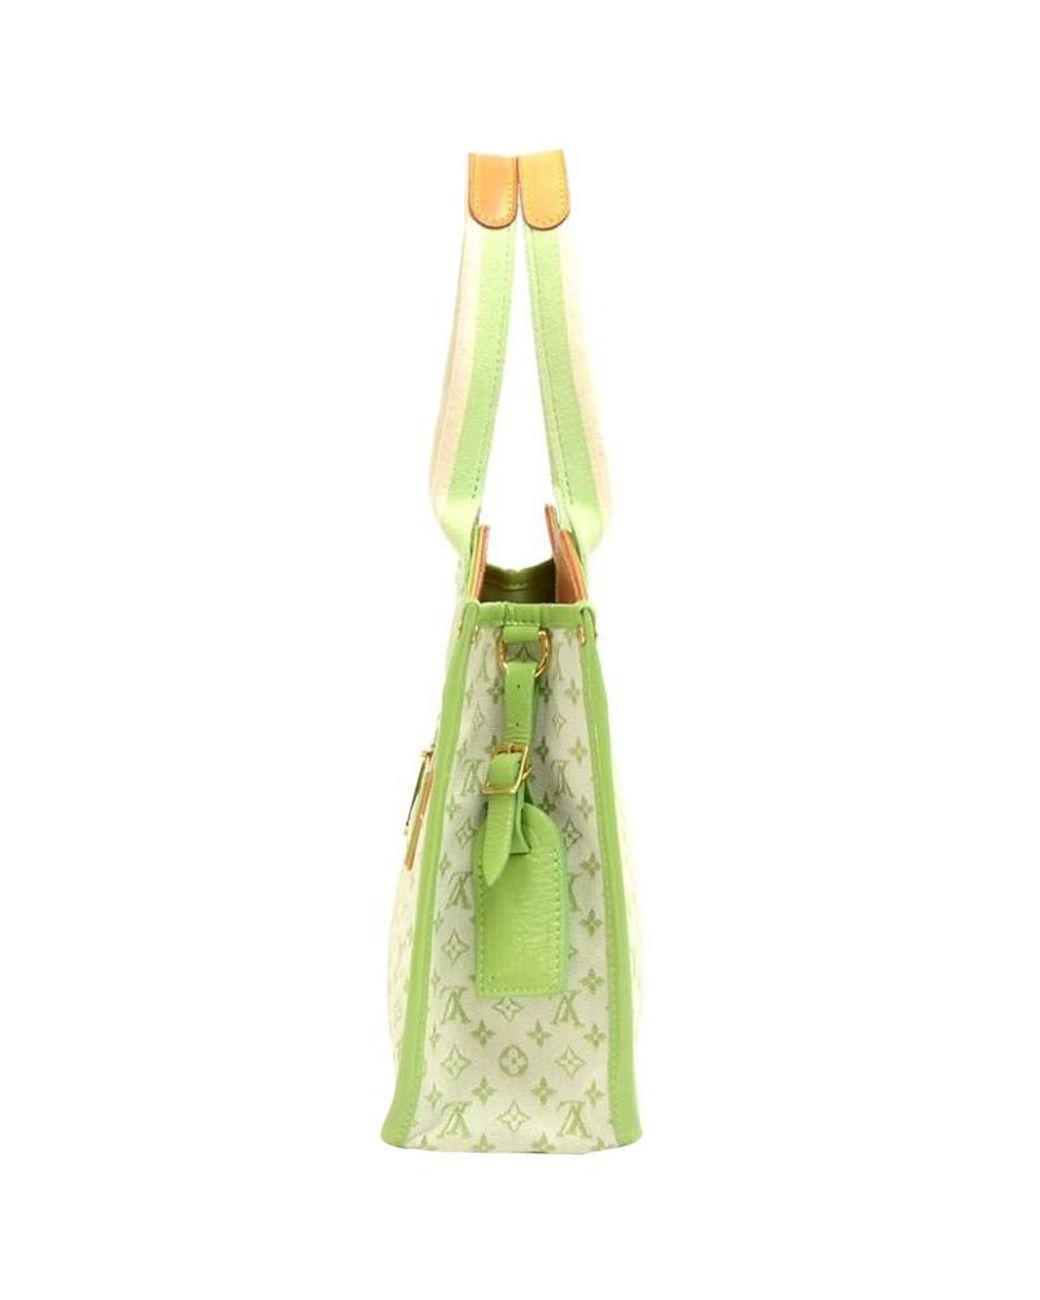 d0afc2bd0 Louis Vuitton Green Monogram Mini Lin Sac Kathleen Bag in Green - Lyst